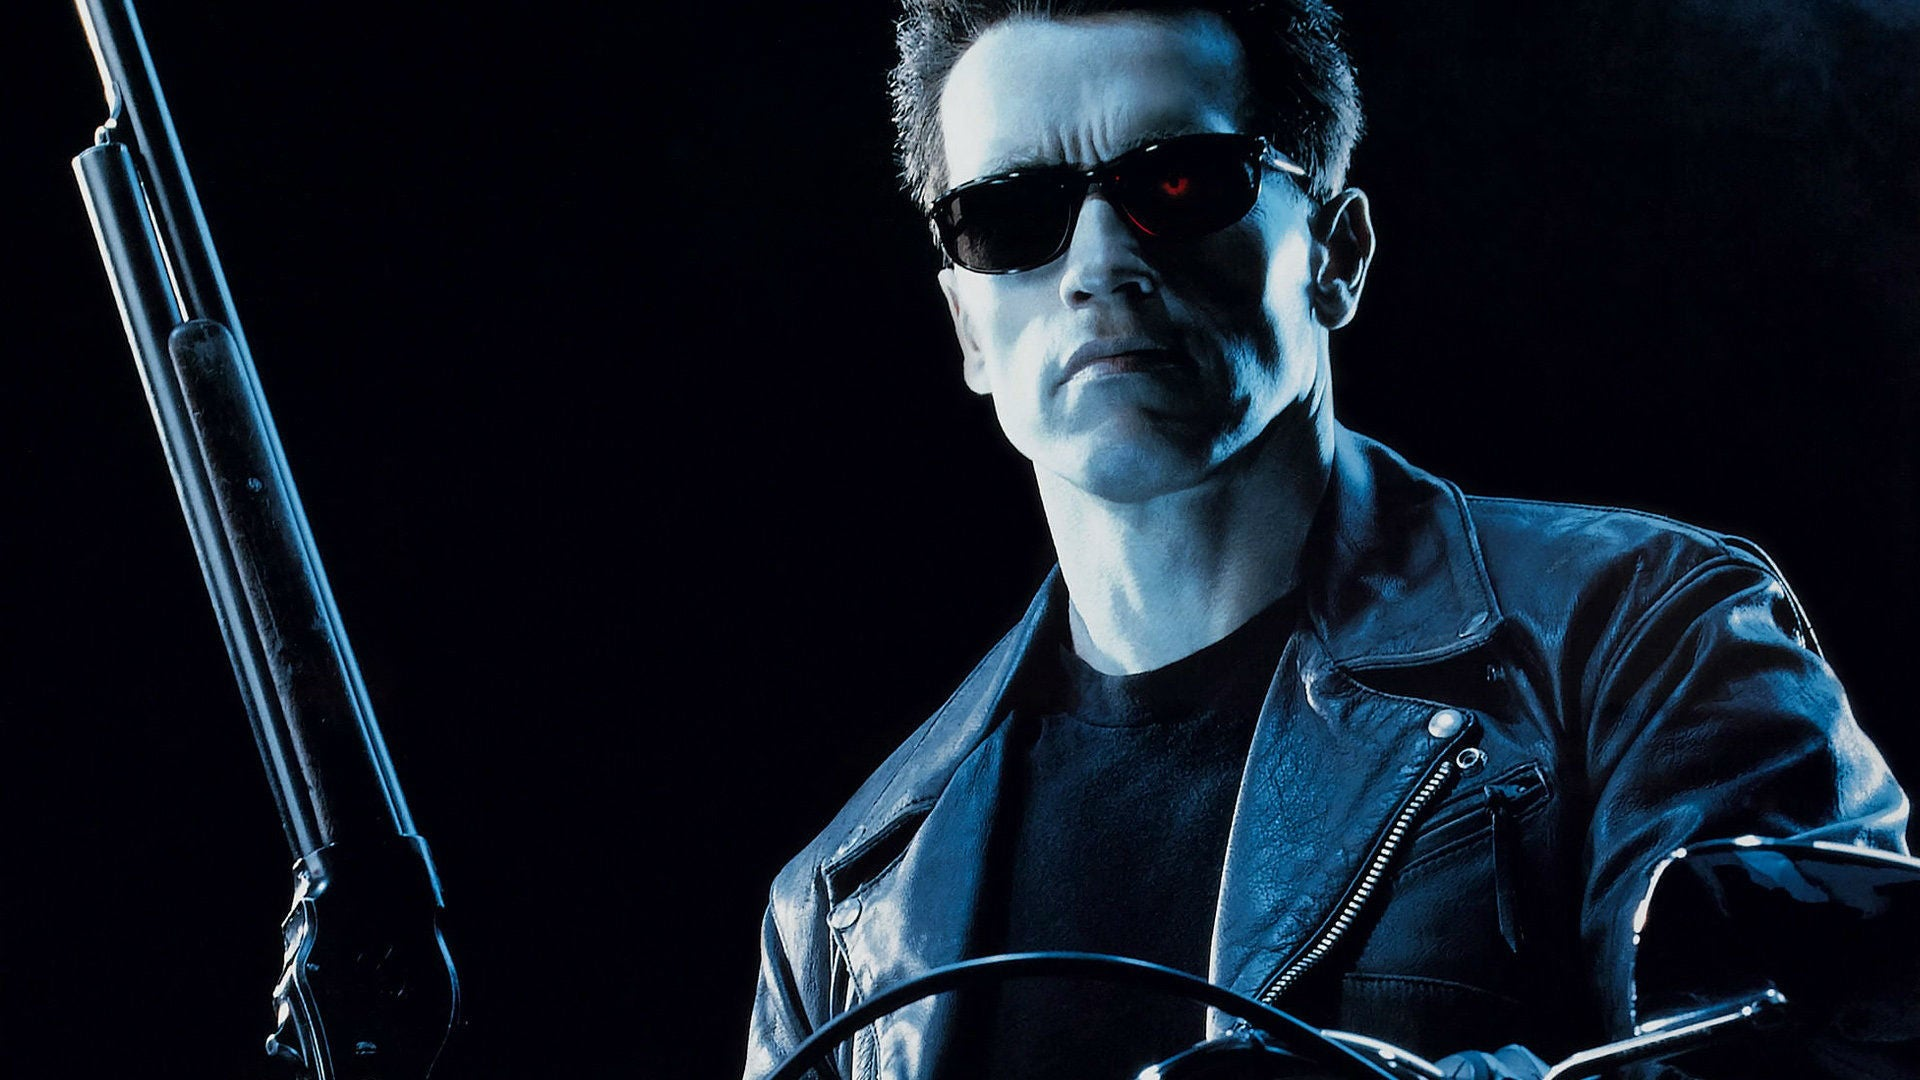 Terminator 2 Will Get A 3D Re-Release In 2017, Check Out The Poster